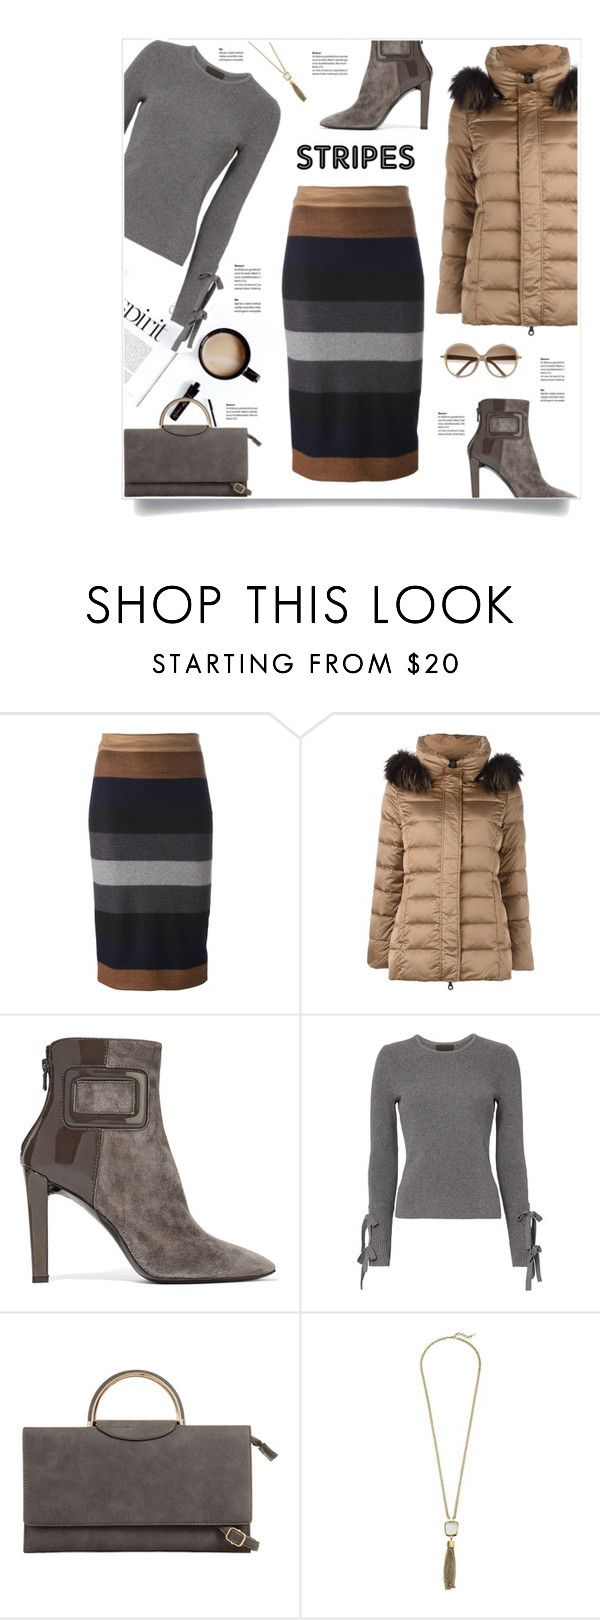 """""""Max Mara Striped Skirt"""" by kiki-bi ❤ liked on Polyvore featuring MaxMara, Hetregó, Roger Vivier, Exclusive for Intermix, Cole Haan and Chloé"""